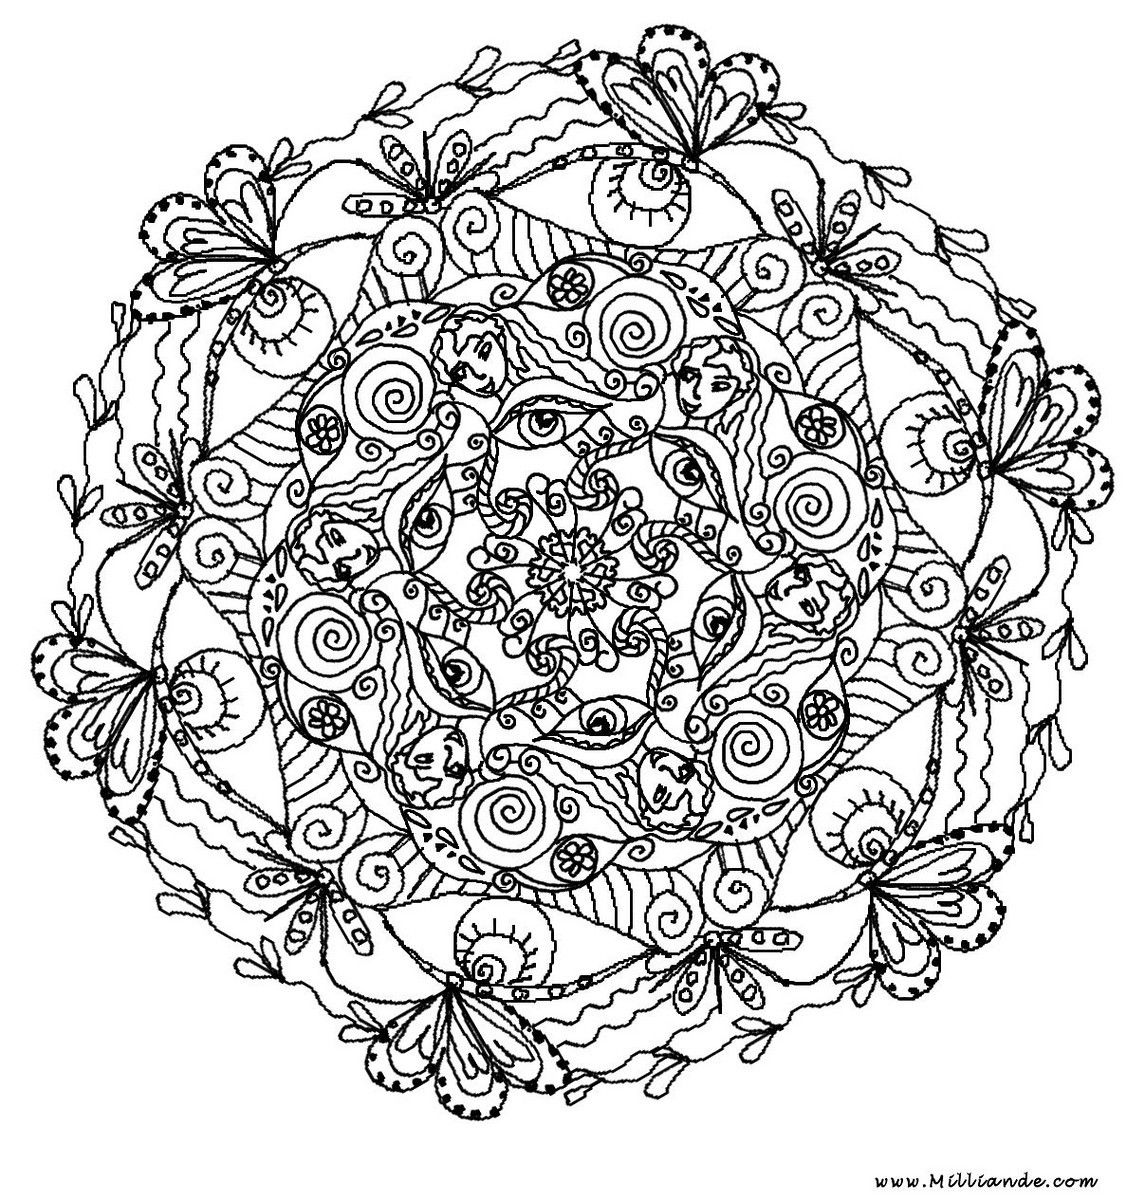 Hard mandala coloring pages for adults - Mandala Coloring Pages Advanced Level Google Search